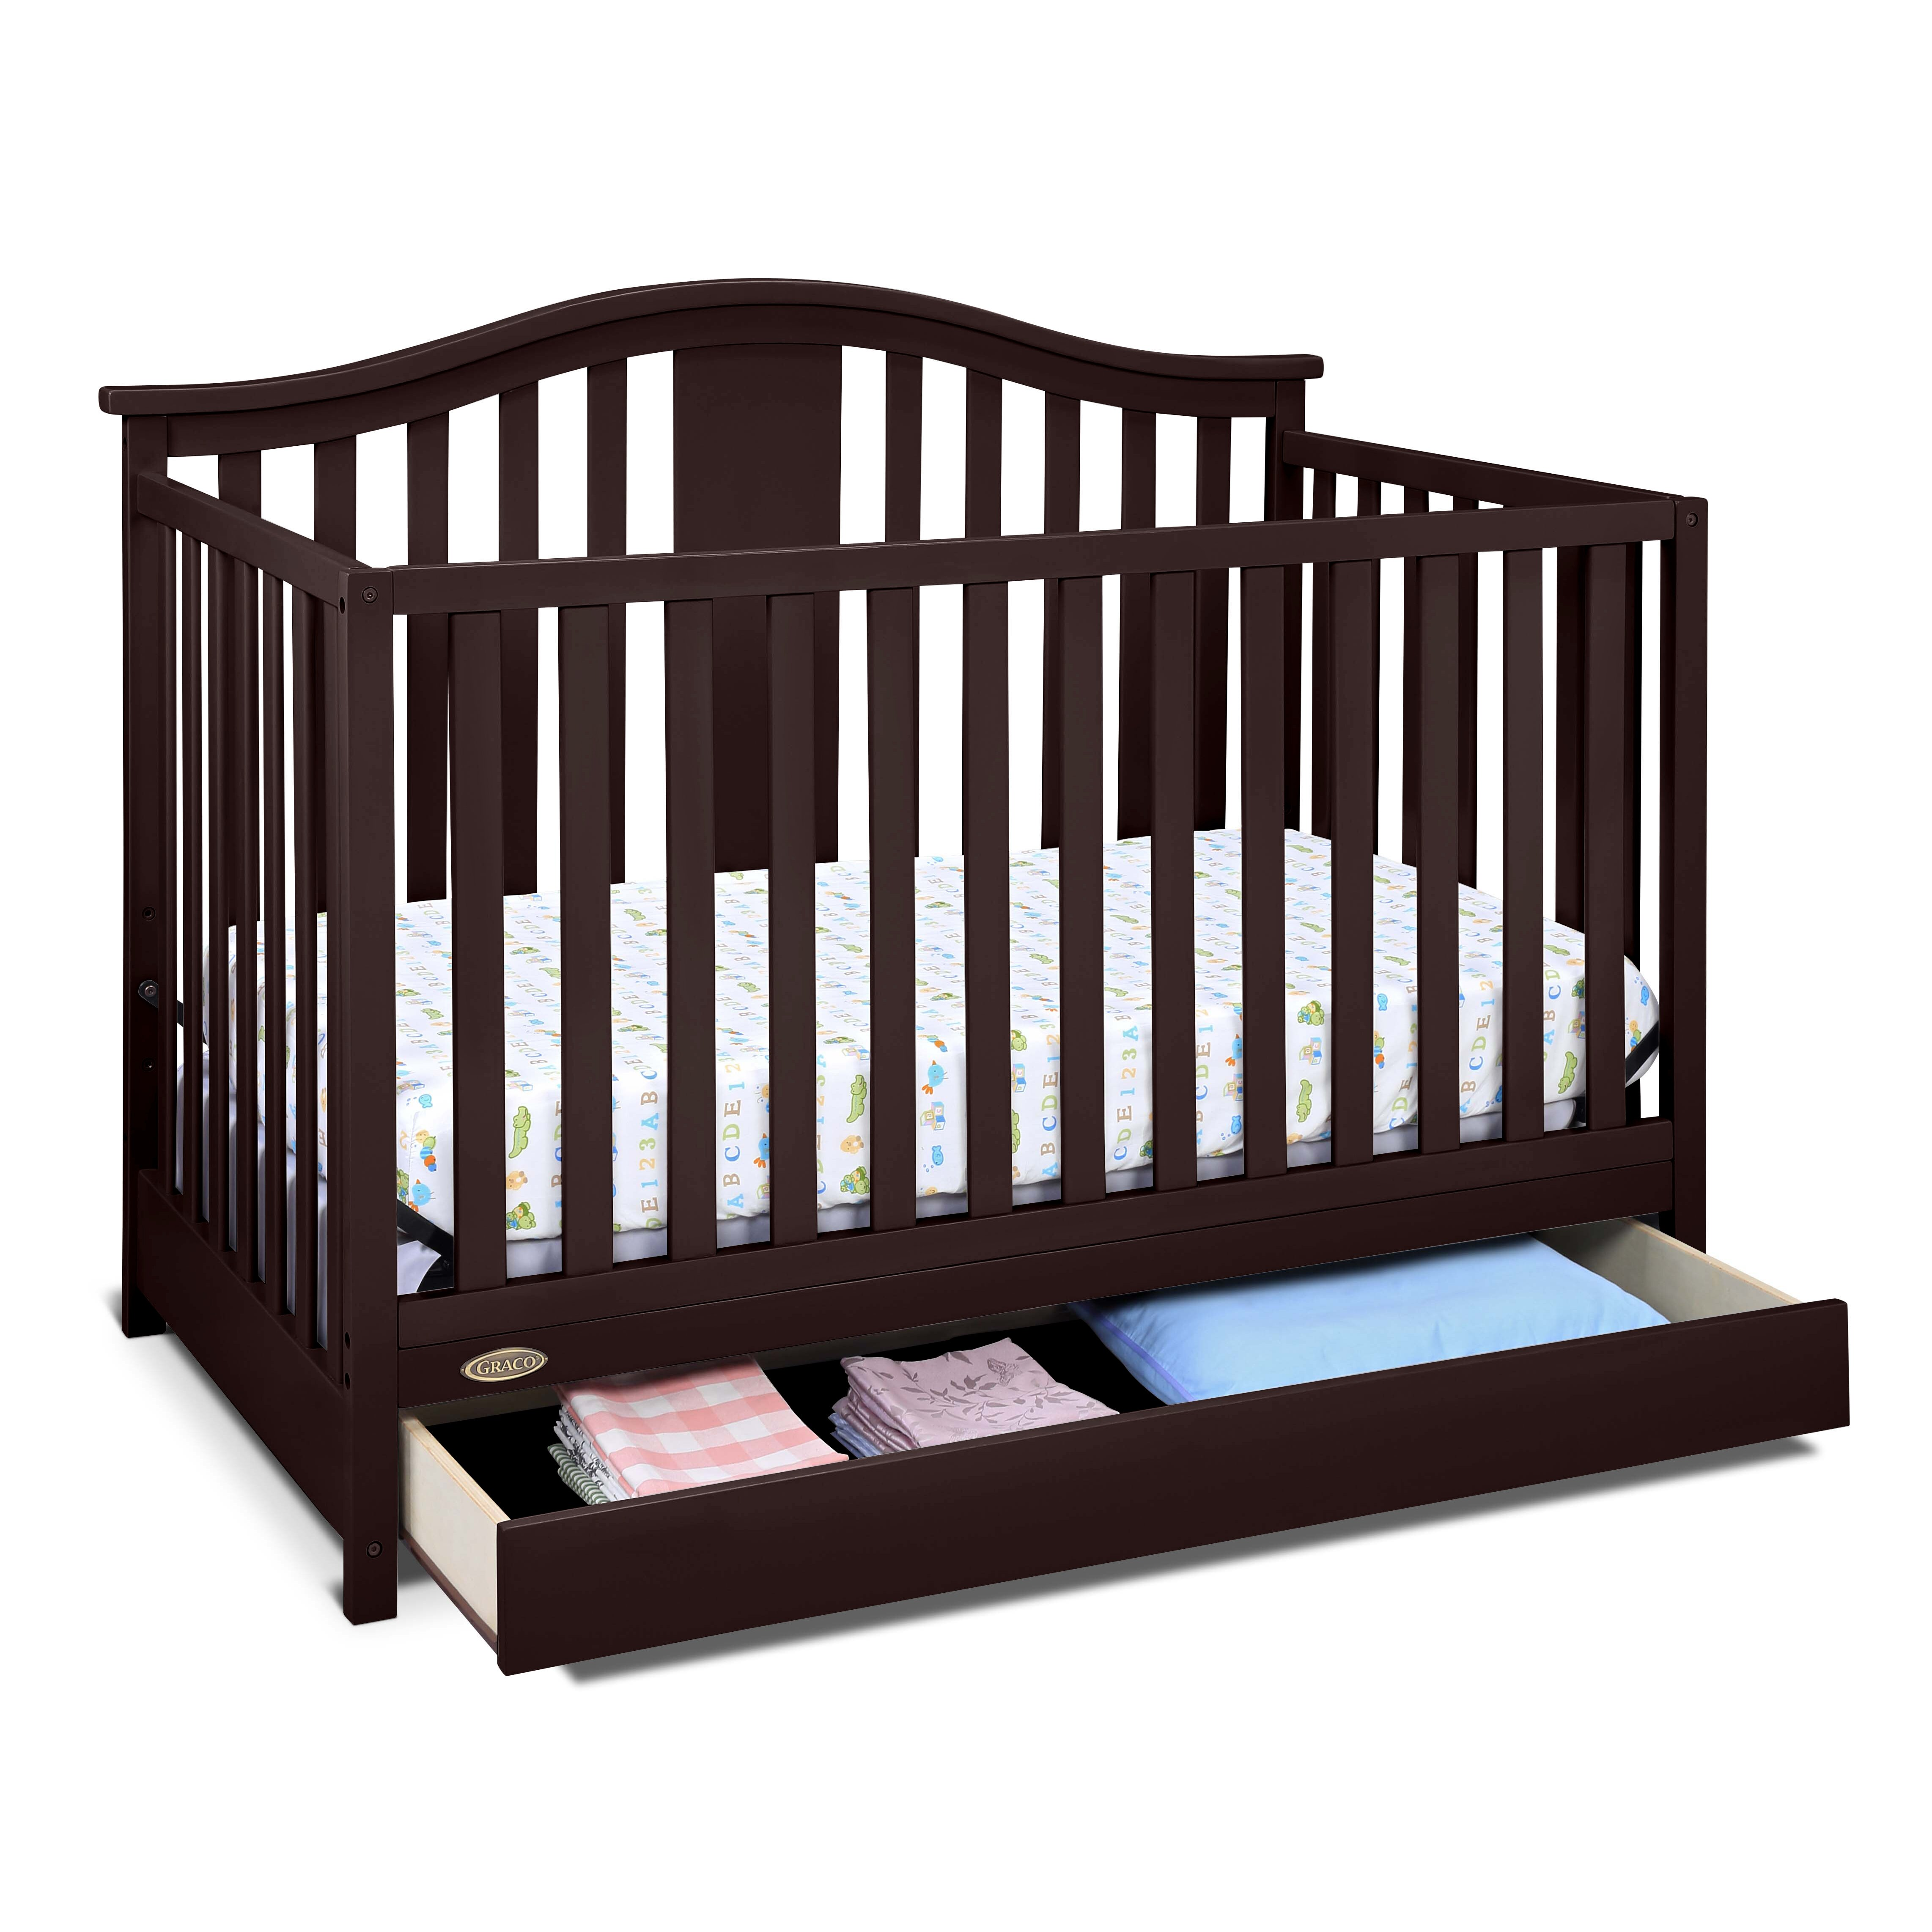 4 In 1 Crib 79 All In One Crib 28 Toddler Bed Rails Usa